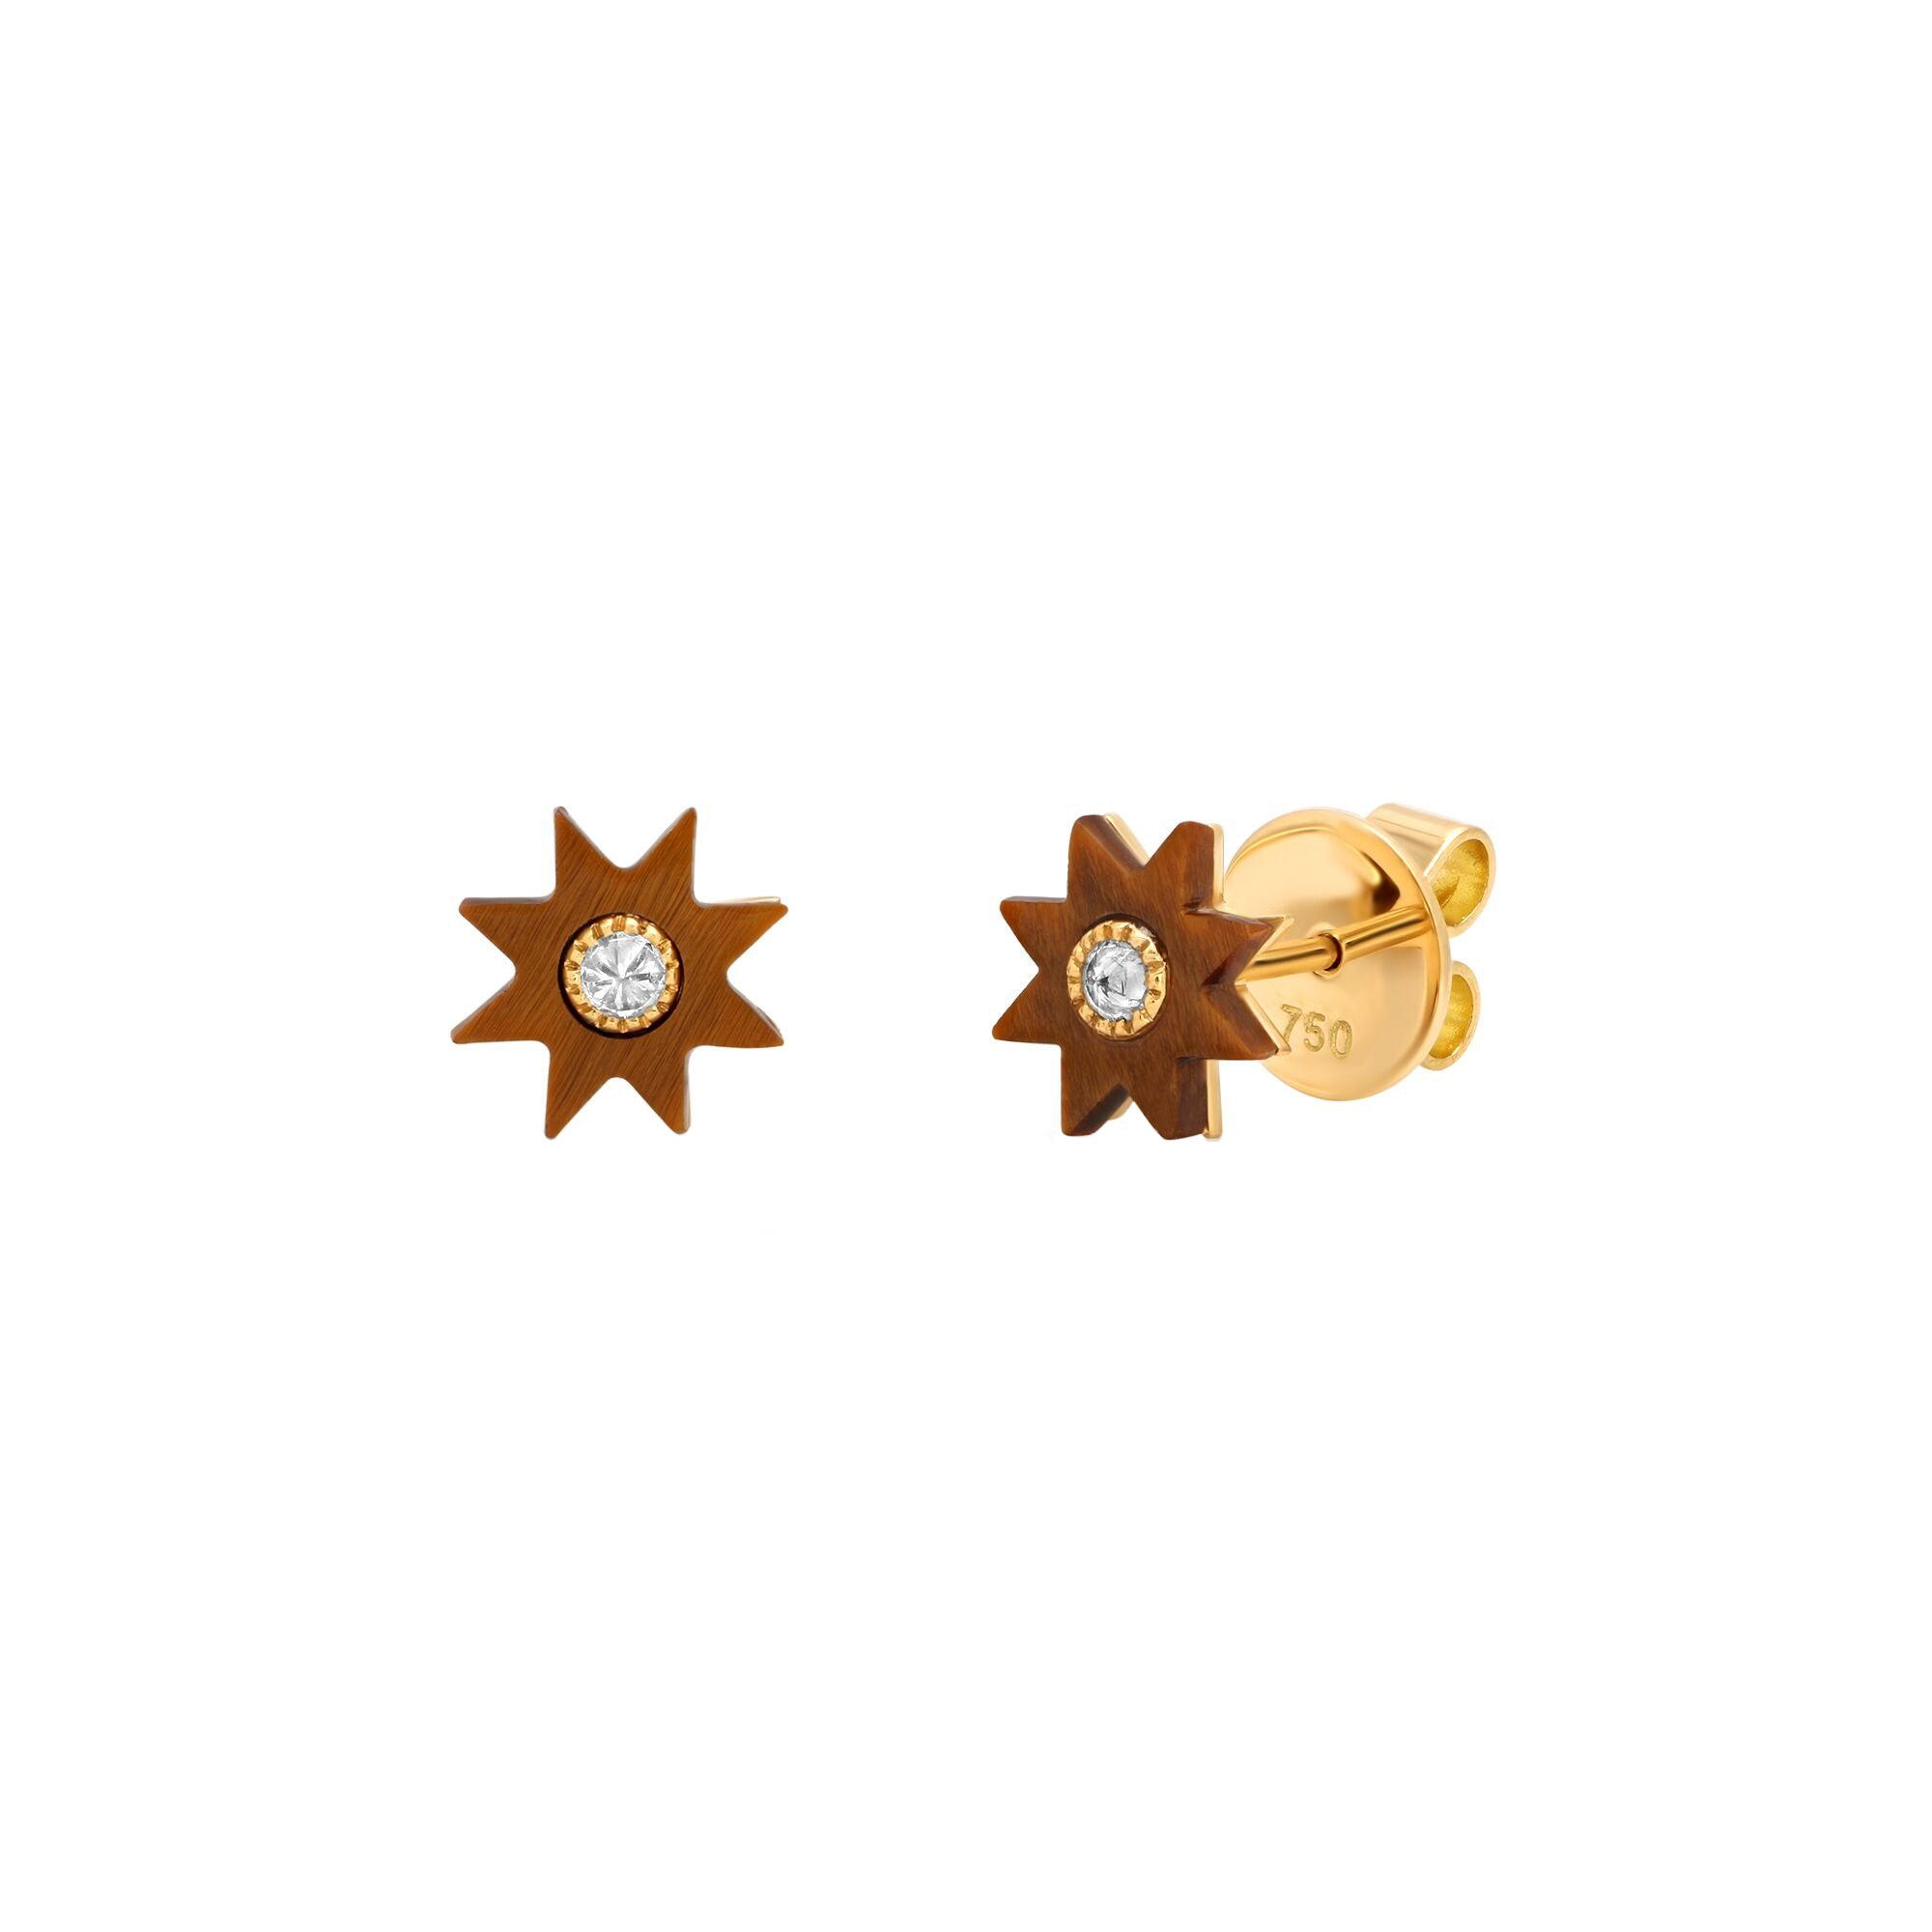 Tiger Yellow Star Studs by Colette for Broken English Jewelry